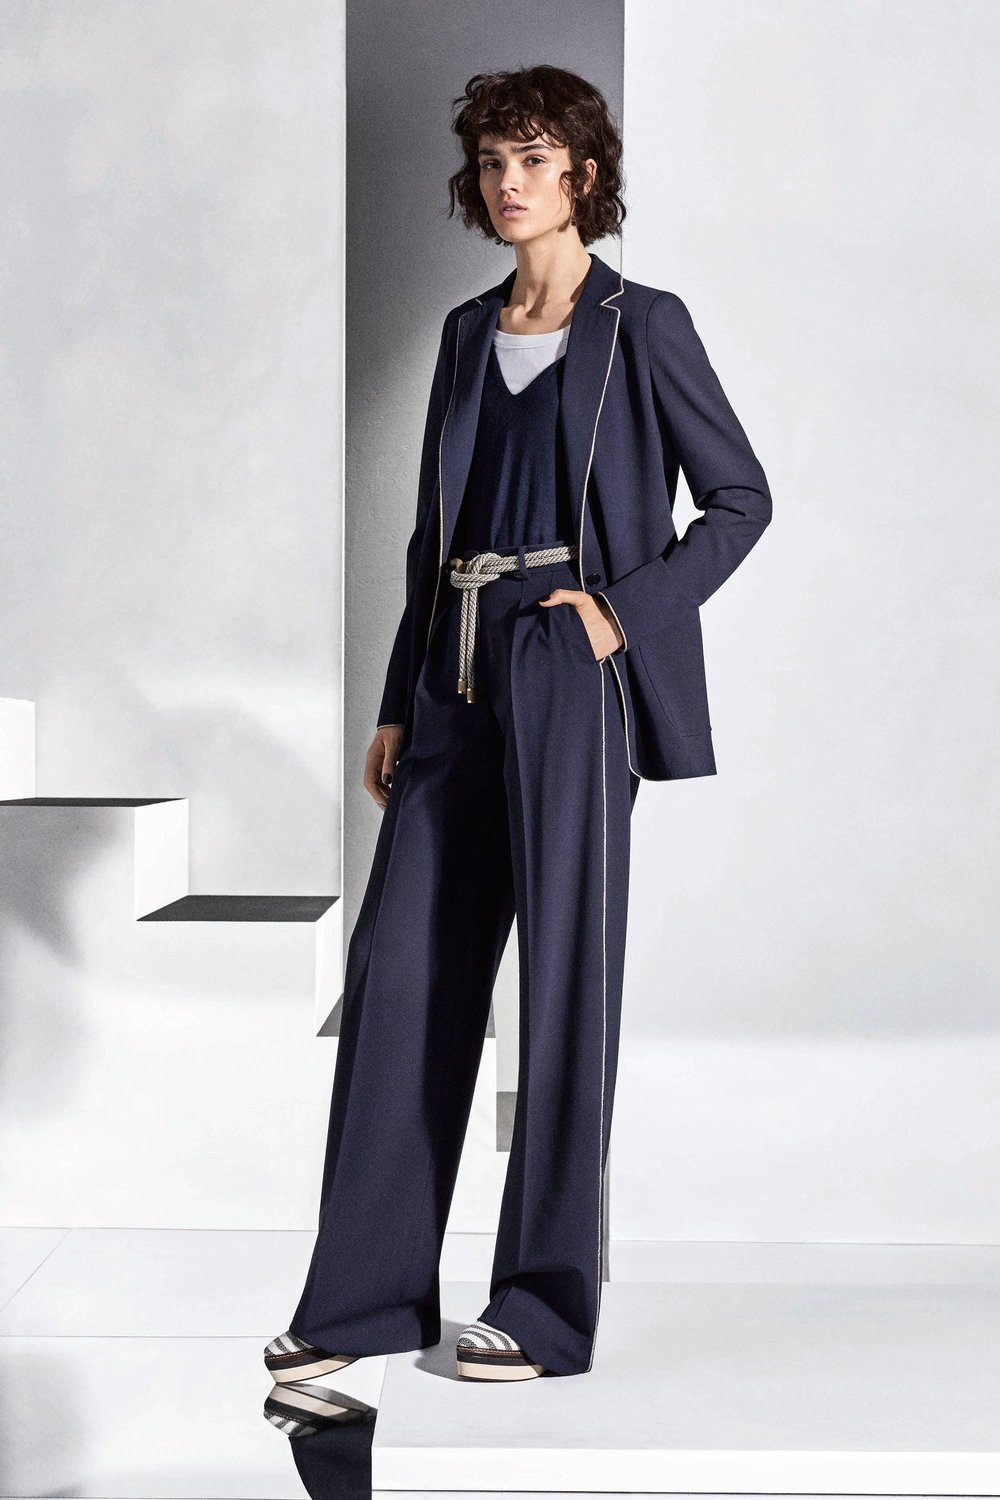 07-Max-Mara-Resort-18.jpg